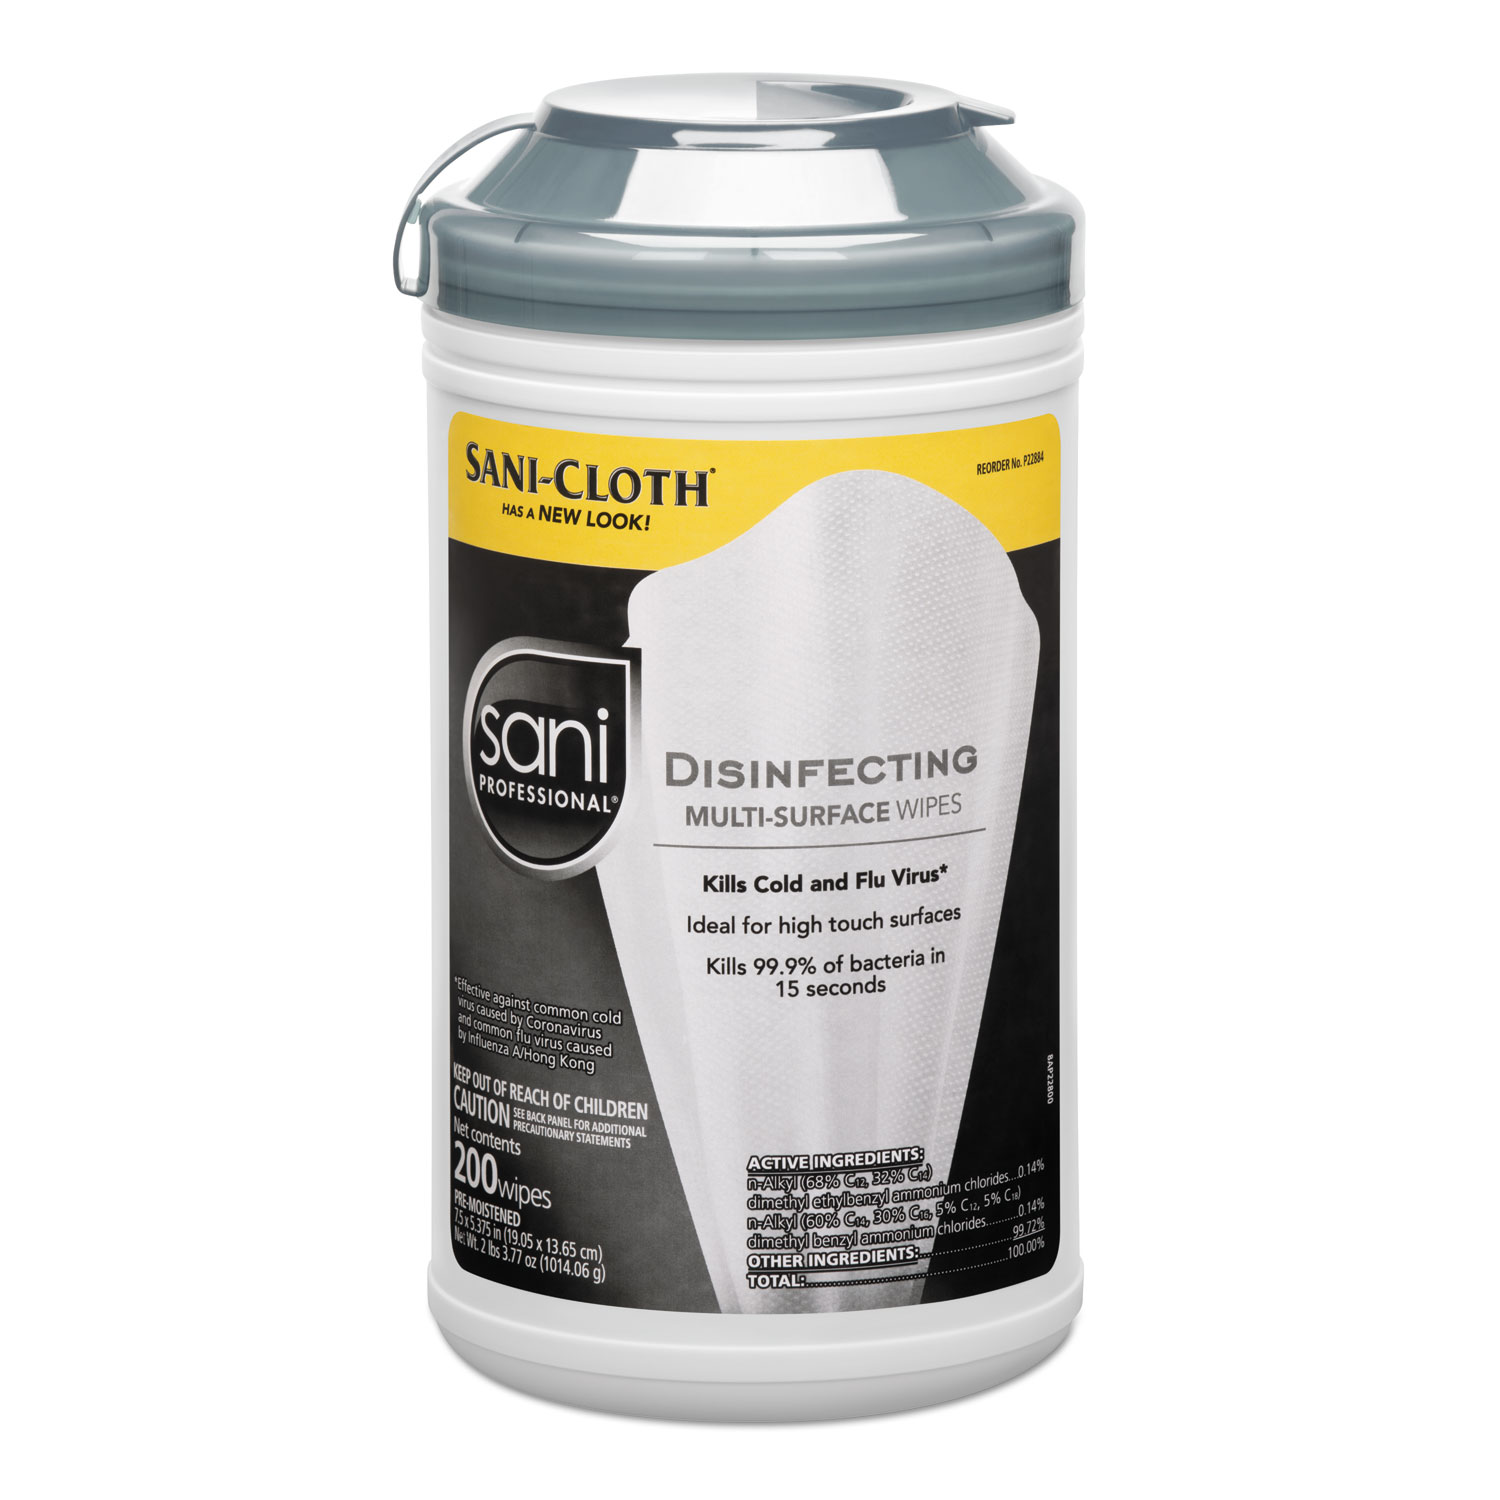 Disinfecting Multi-Surface Wipes, 7 1/2 x 5 3/8, 200/Canister, 6/Carton